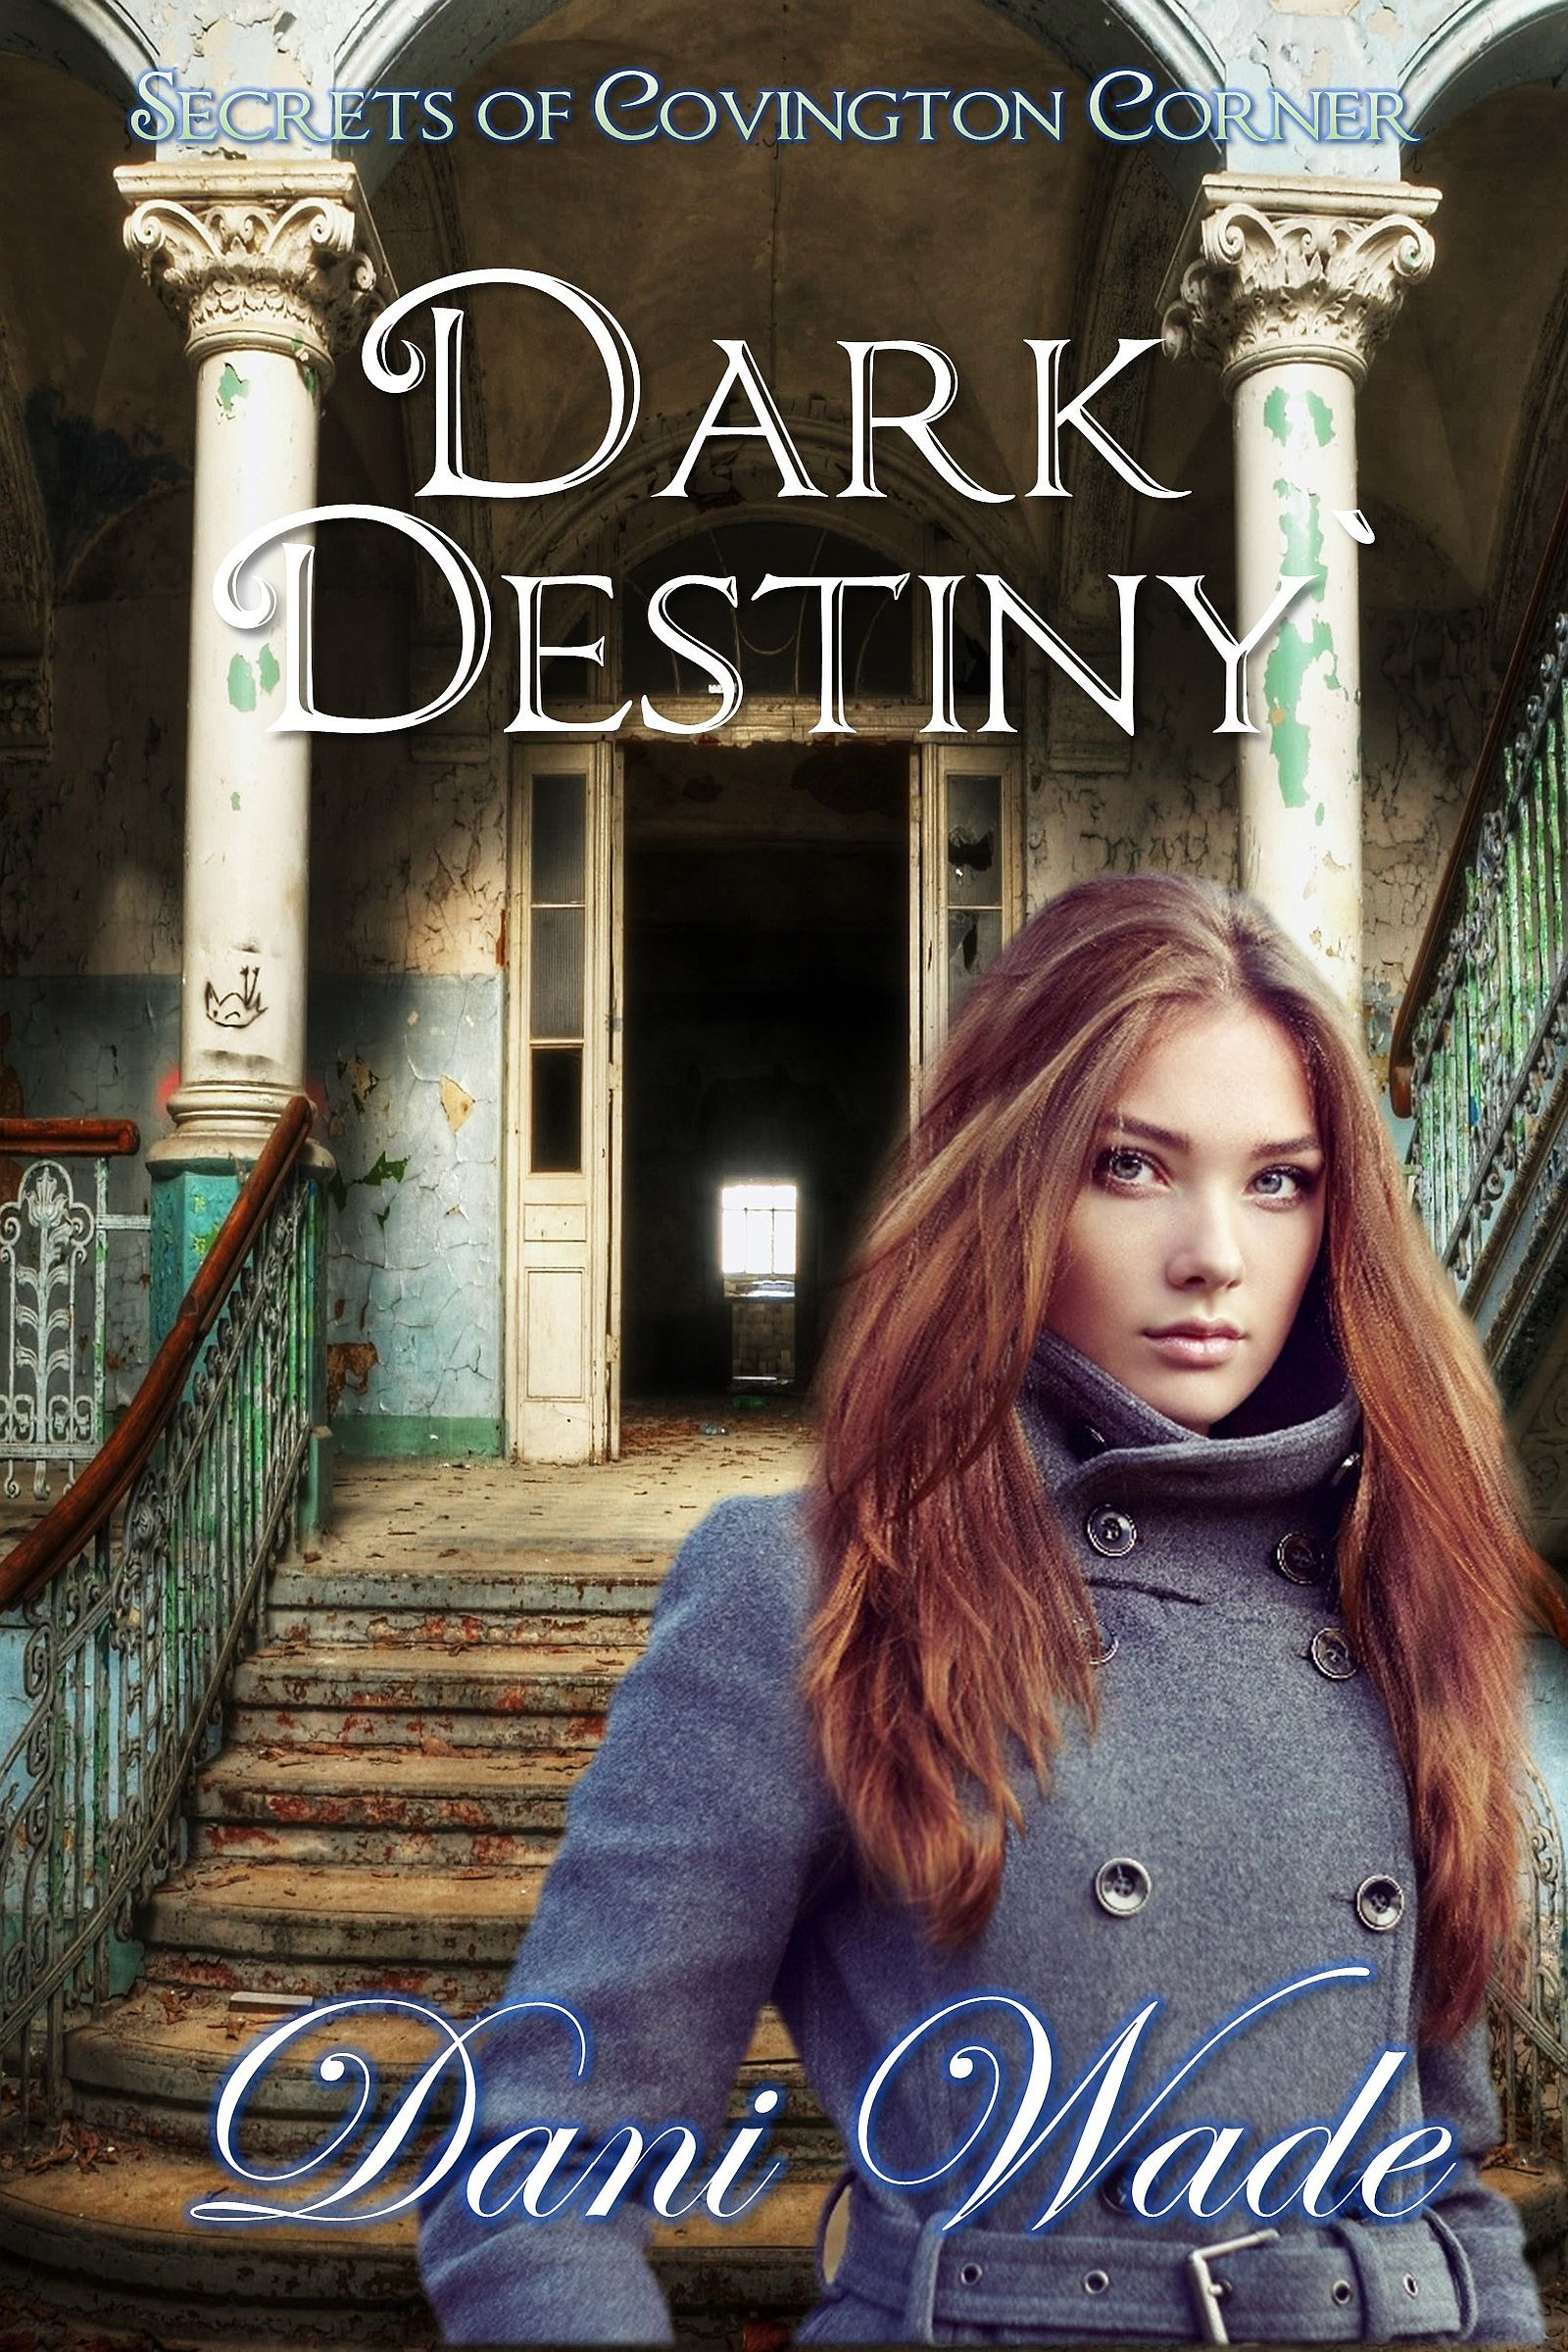 Dark Destiny book cover with title and woman standing in front of an abandoned hospital.